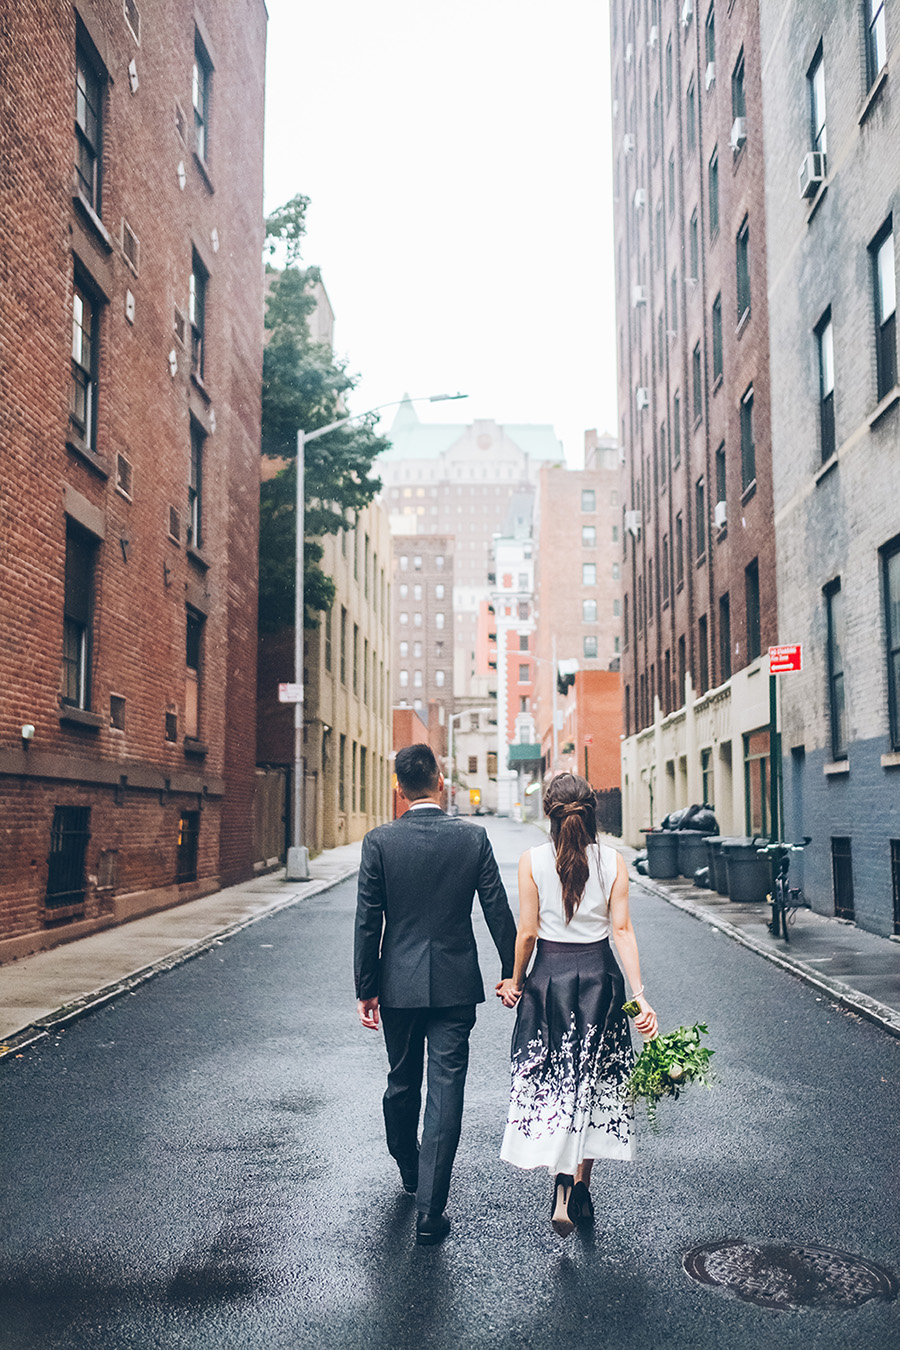 NEW-YORK-CITY-WEDDING-PHOTOGRAPHER-INTIMATE-WEDDING-ELOPEMENT-BROOKLYN-PROMENADE-CITYHALL-MANHATTAN-BROOKLYN-WEDDING-PHOTOGRAPHY-JackieAaron-0050.jpg